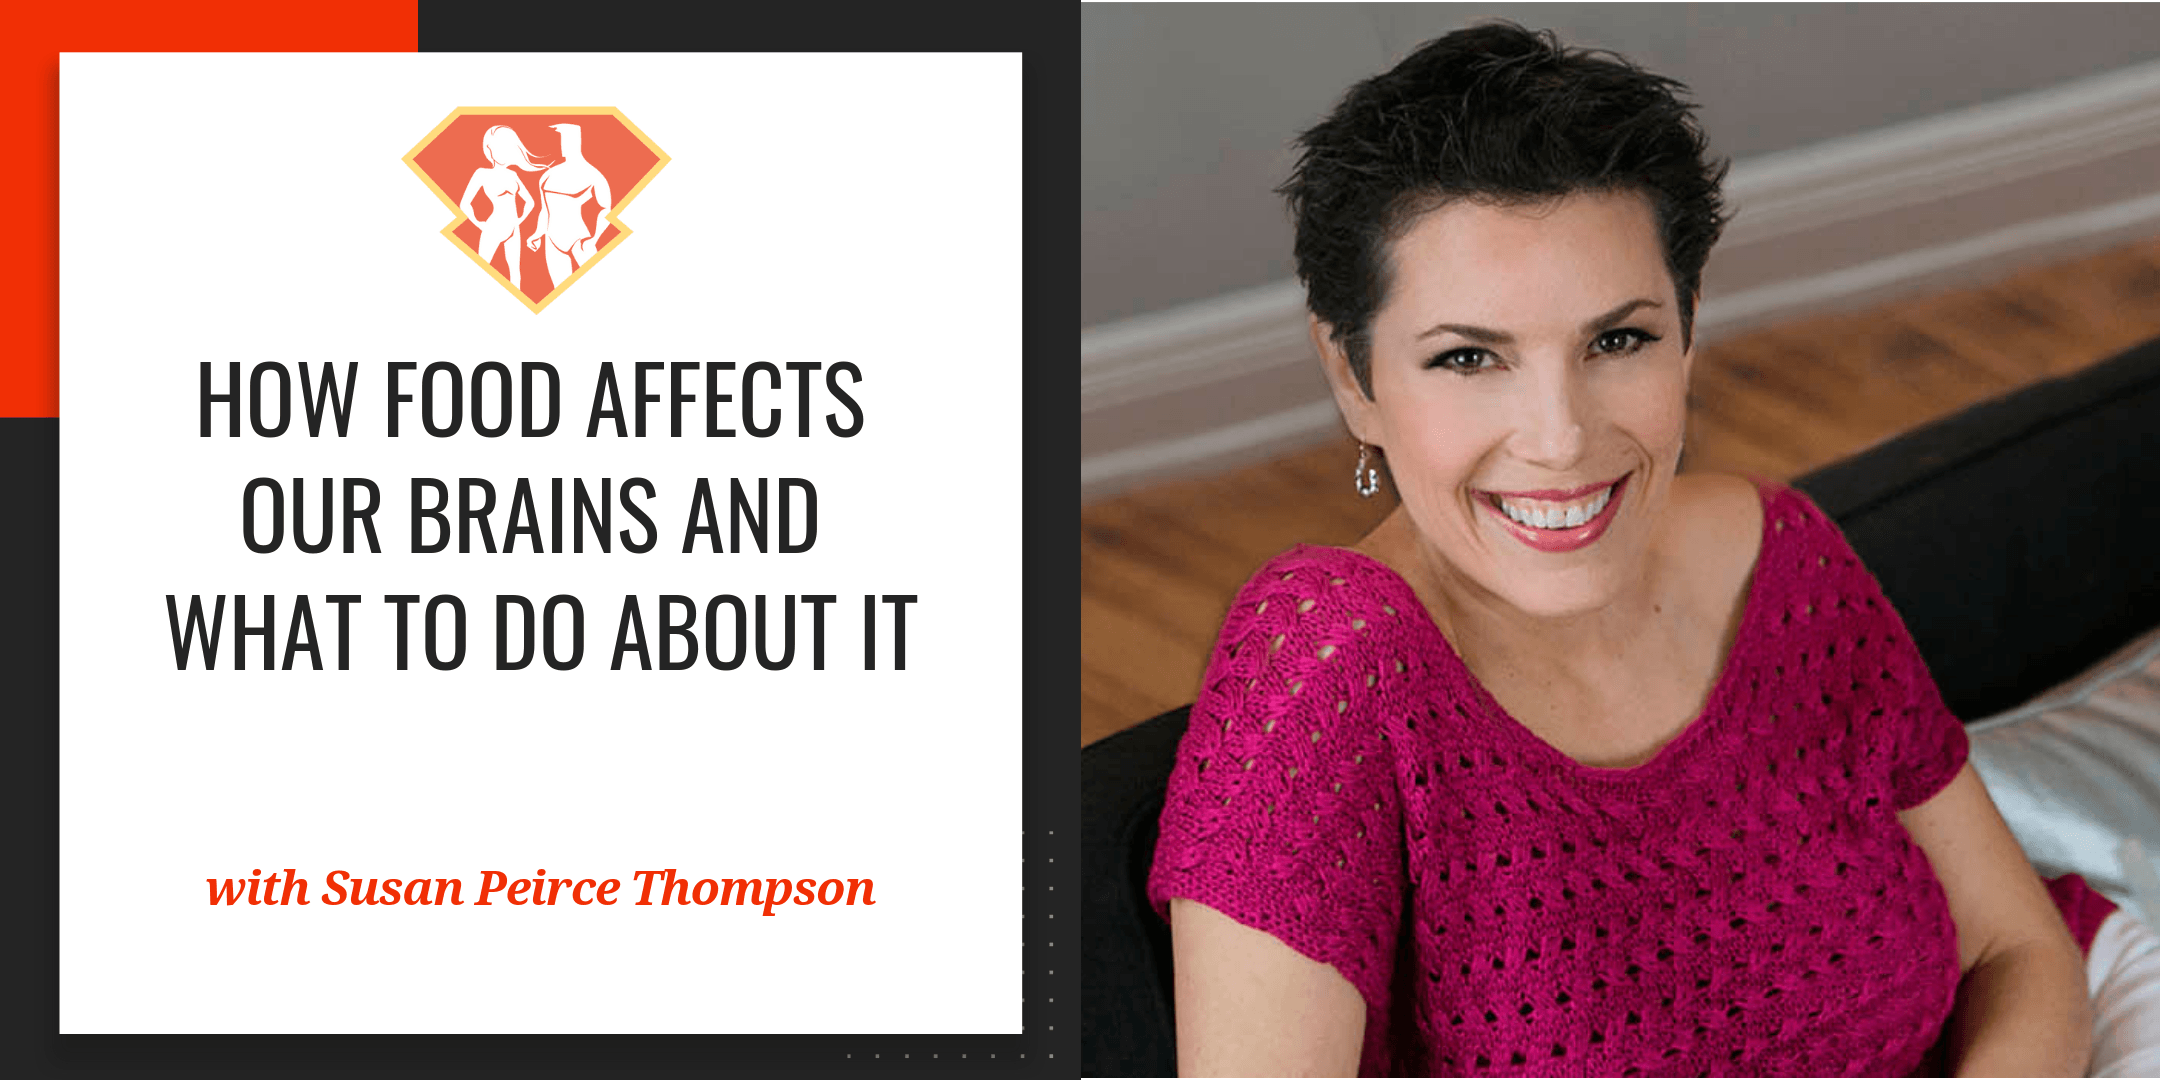 How Food Affects Our Brains And What To Do About It W/ Susan Peirce